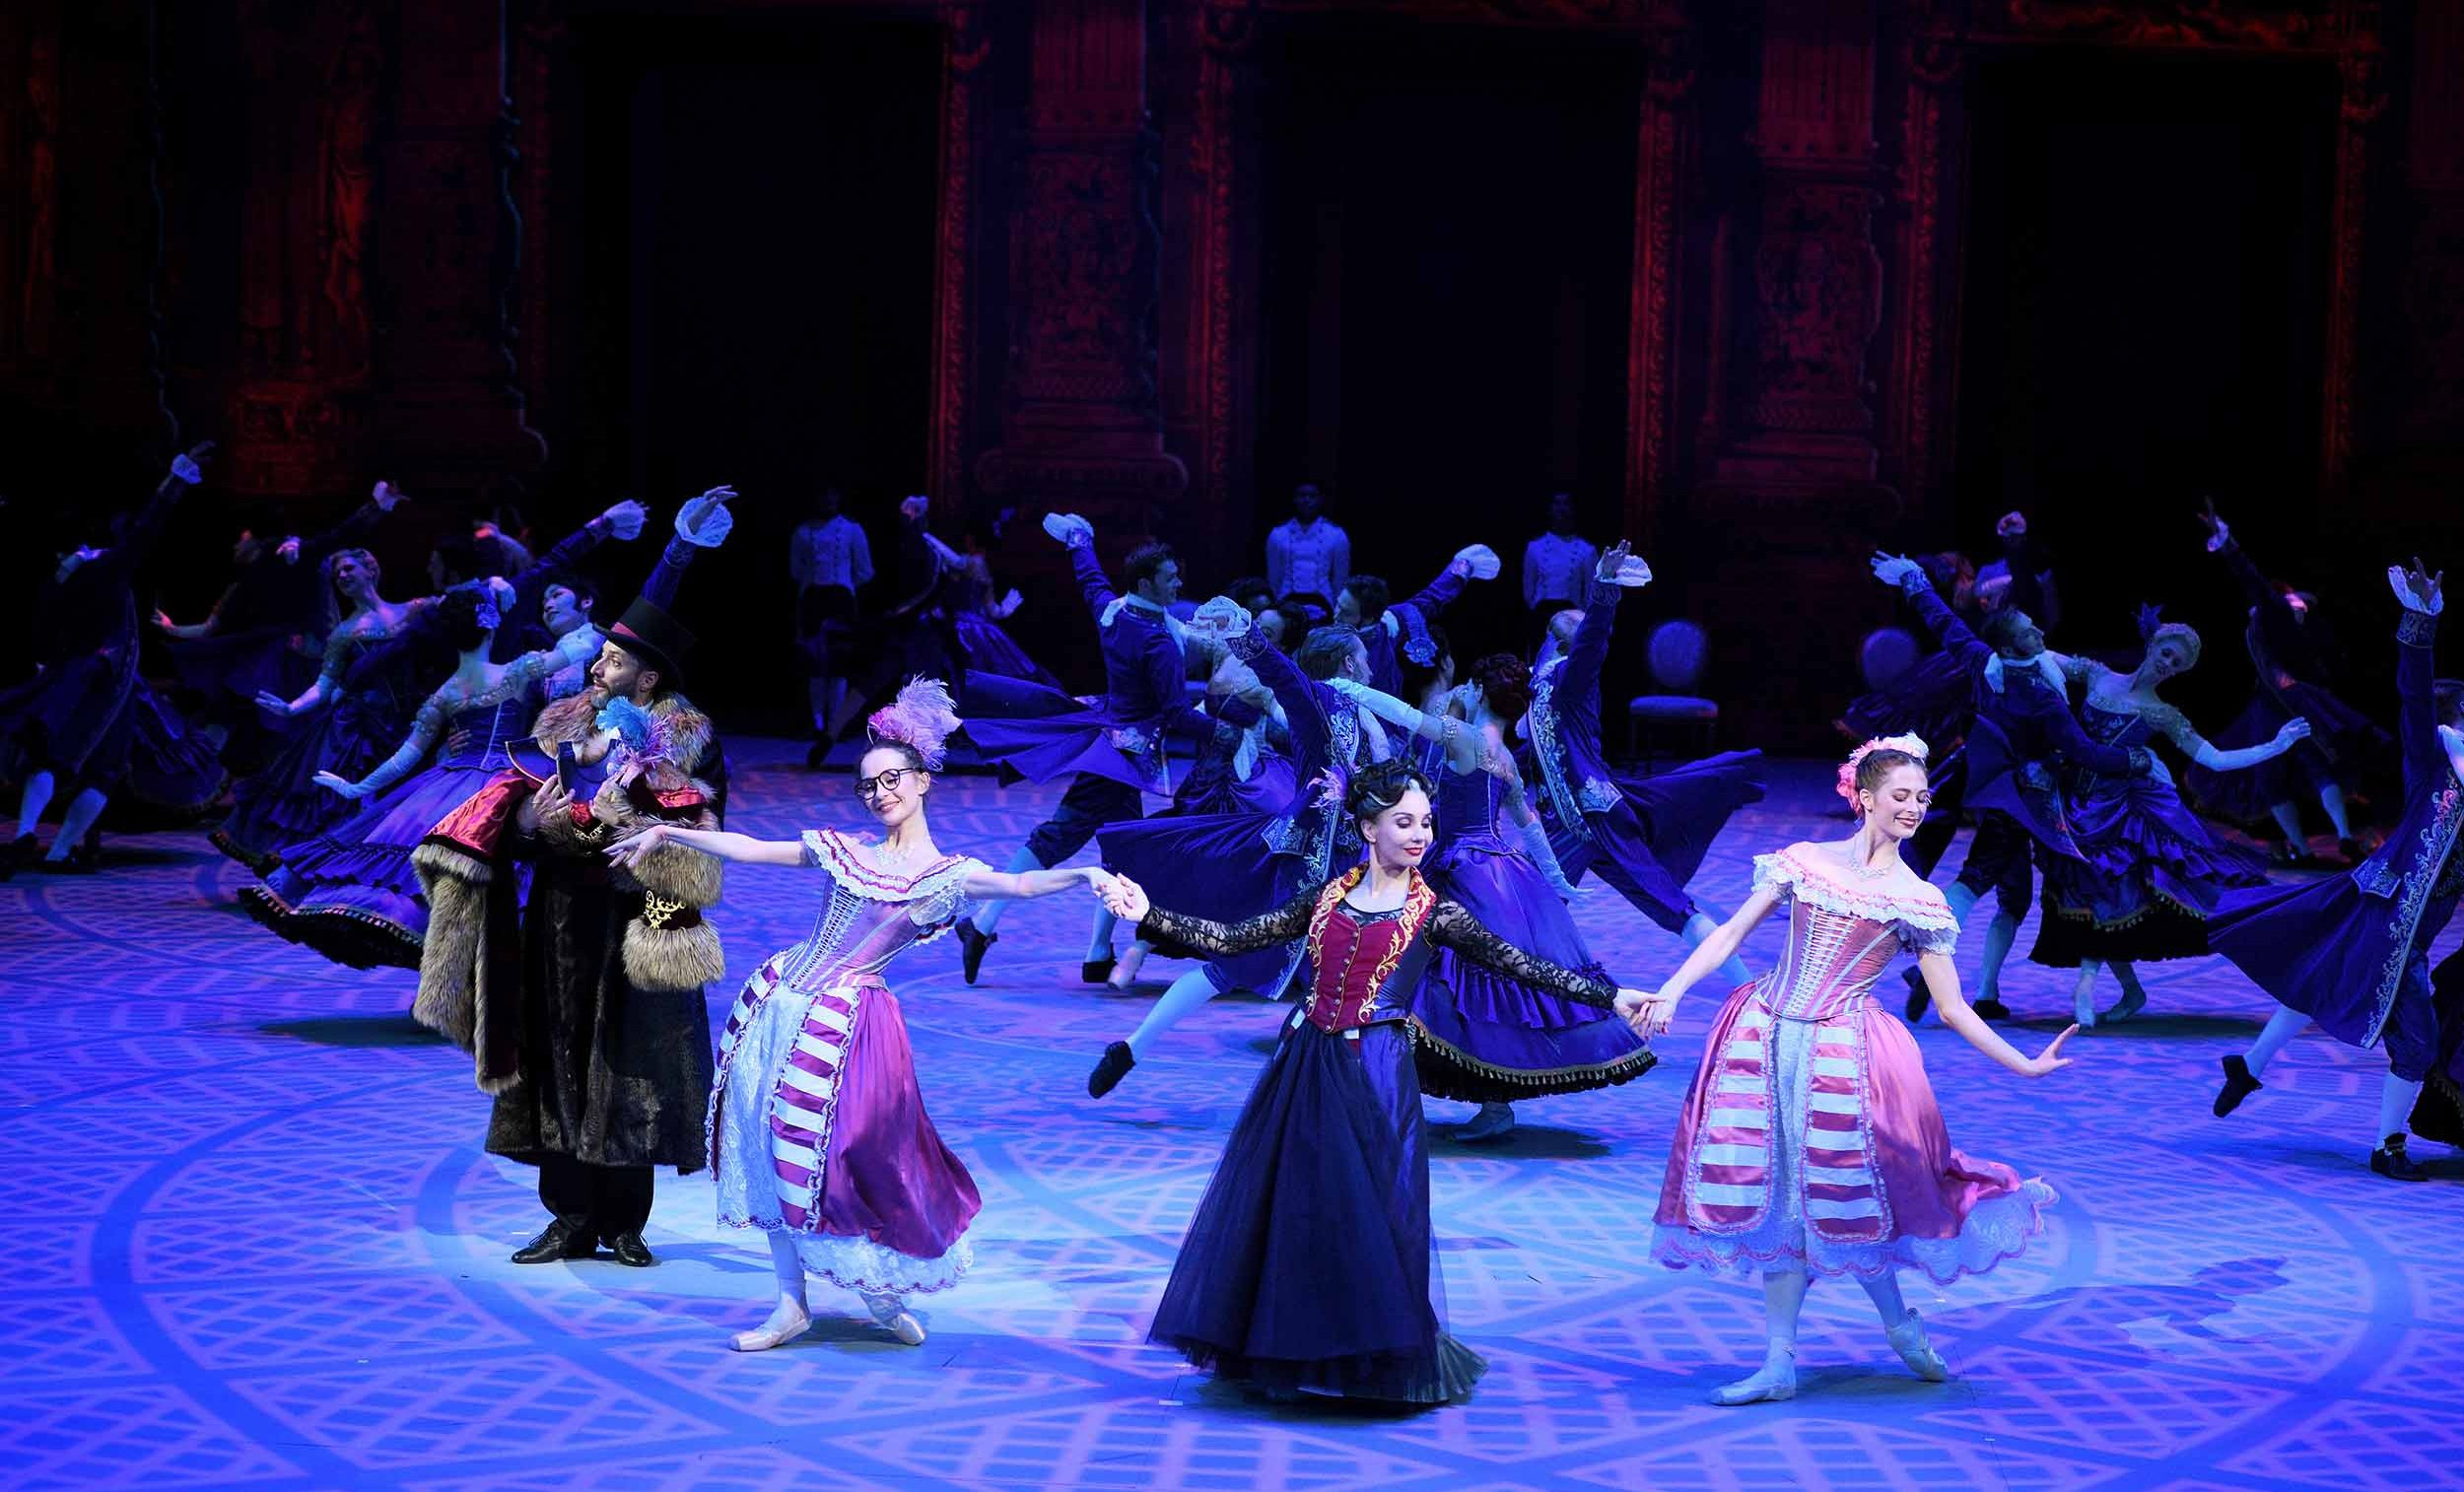 Katja Tamara and Emma in Cinderella in-the-round (c) Laurent Liotardo.